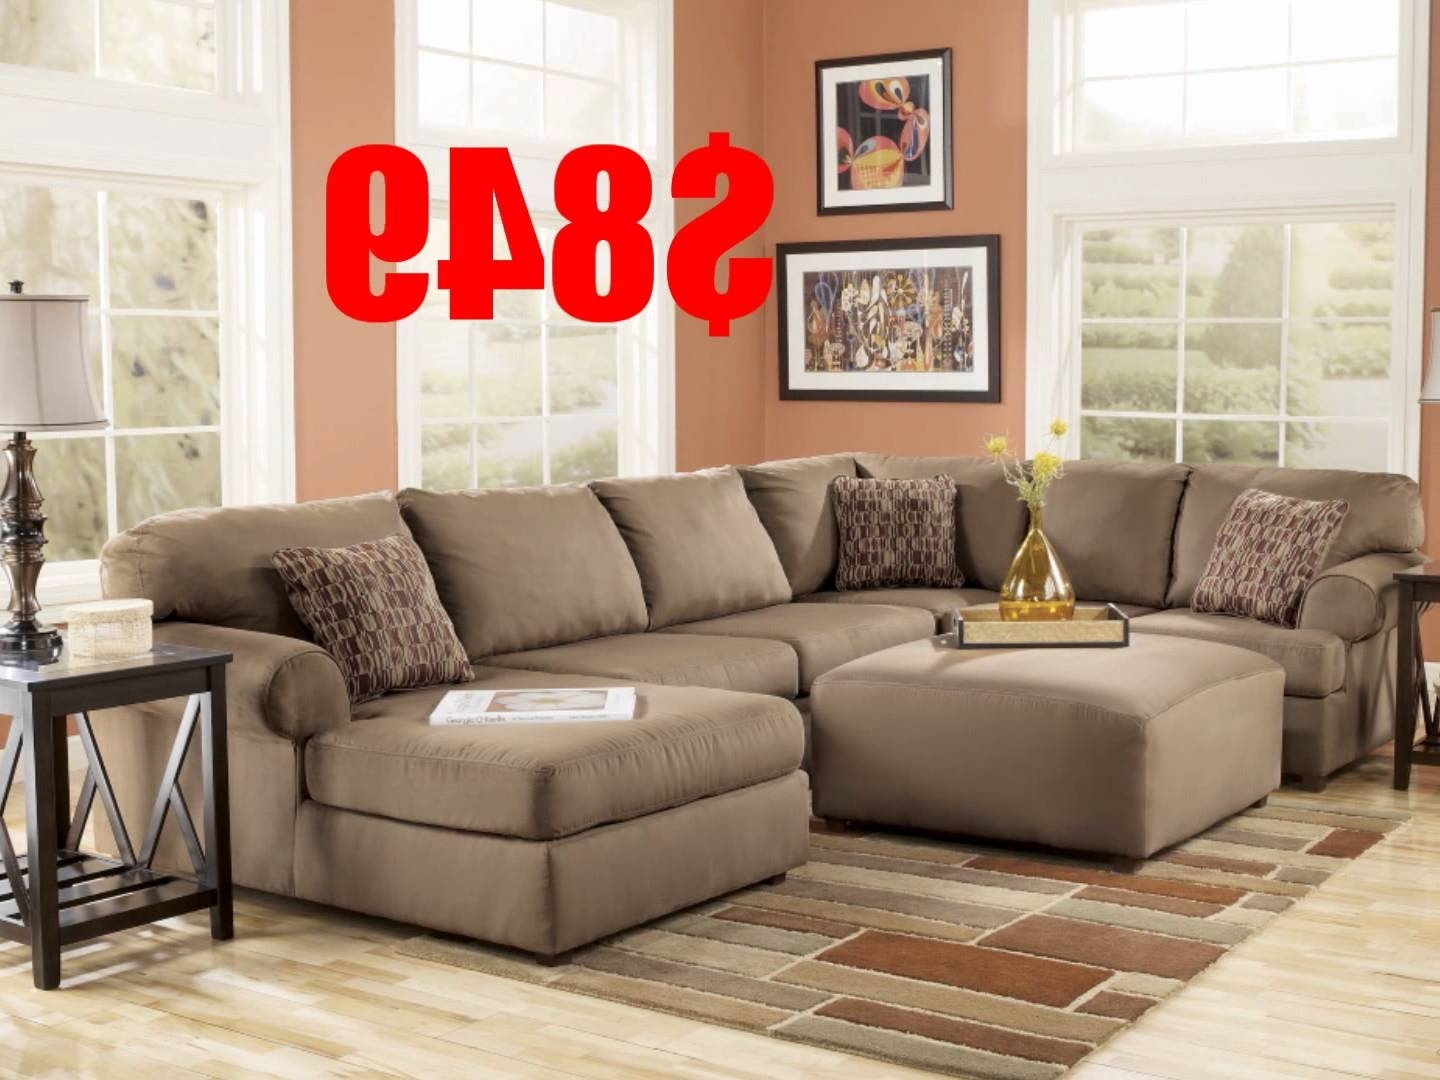 Preferred 10x8 Sectional Sofas With Ashley Furniture Sectional Sofas – Mforum (View 4 of 20)